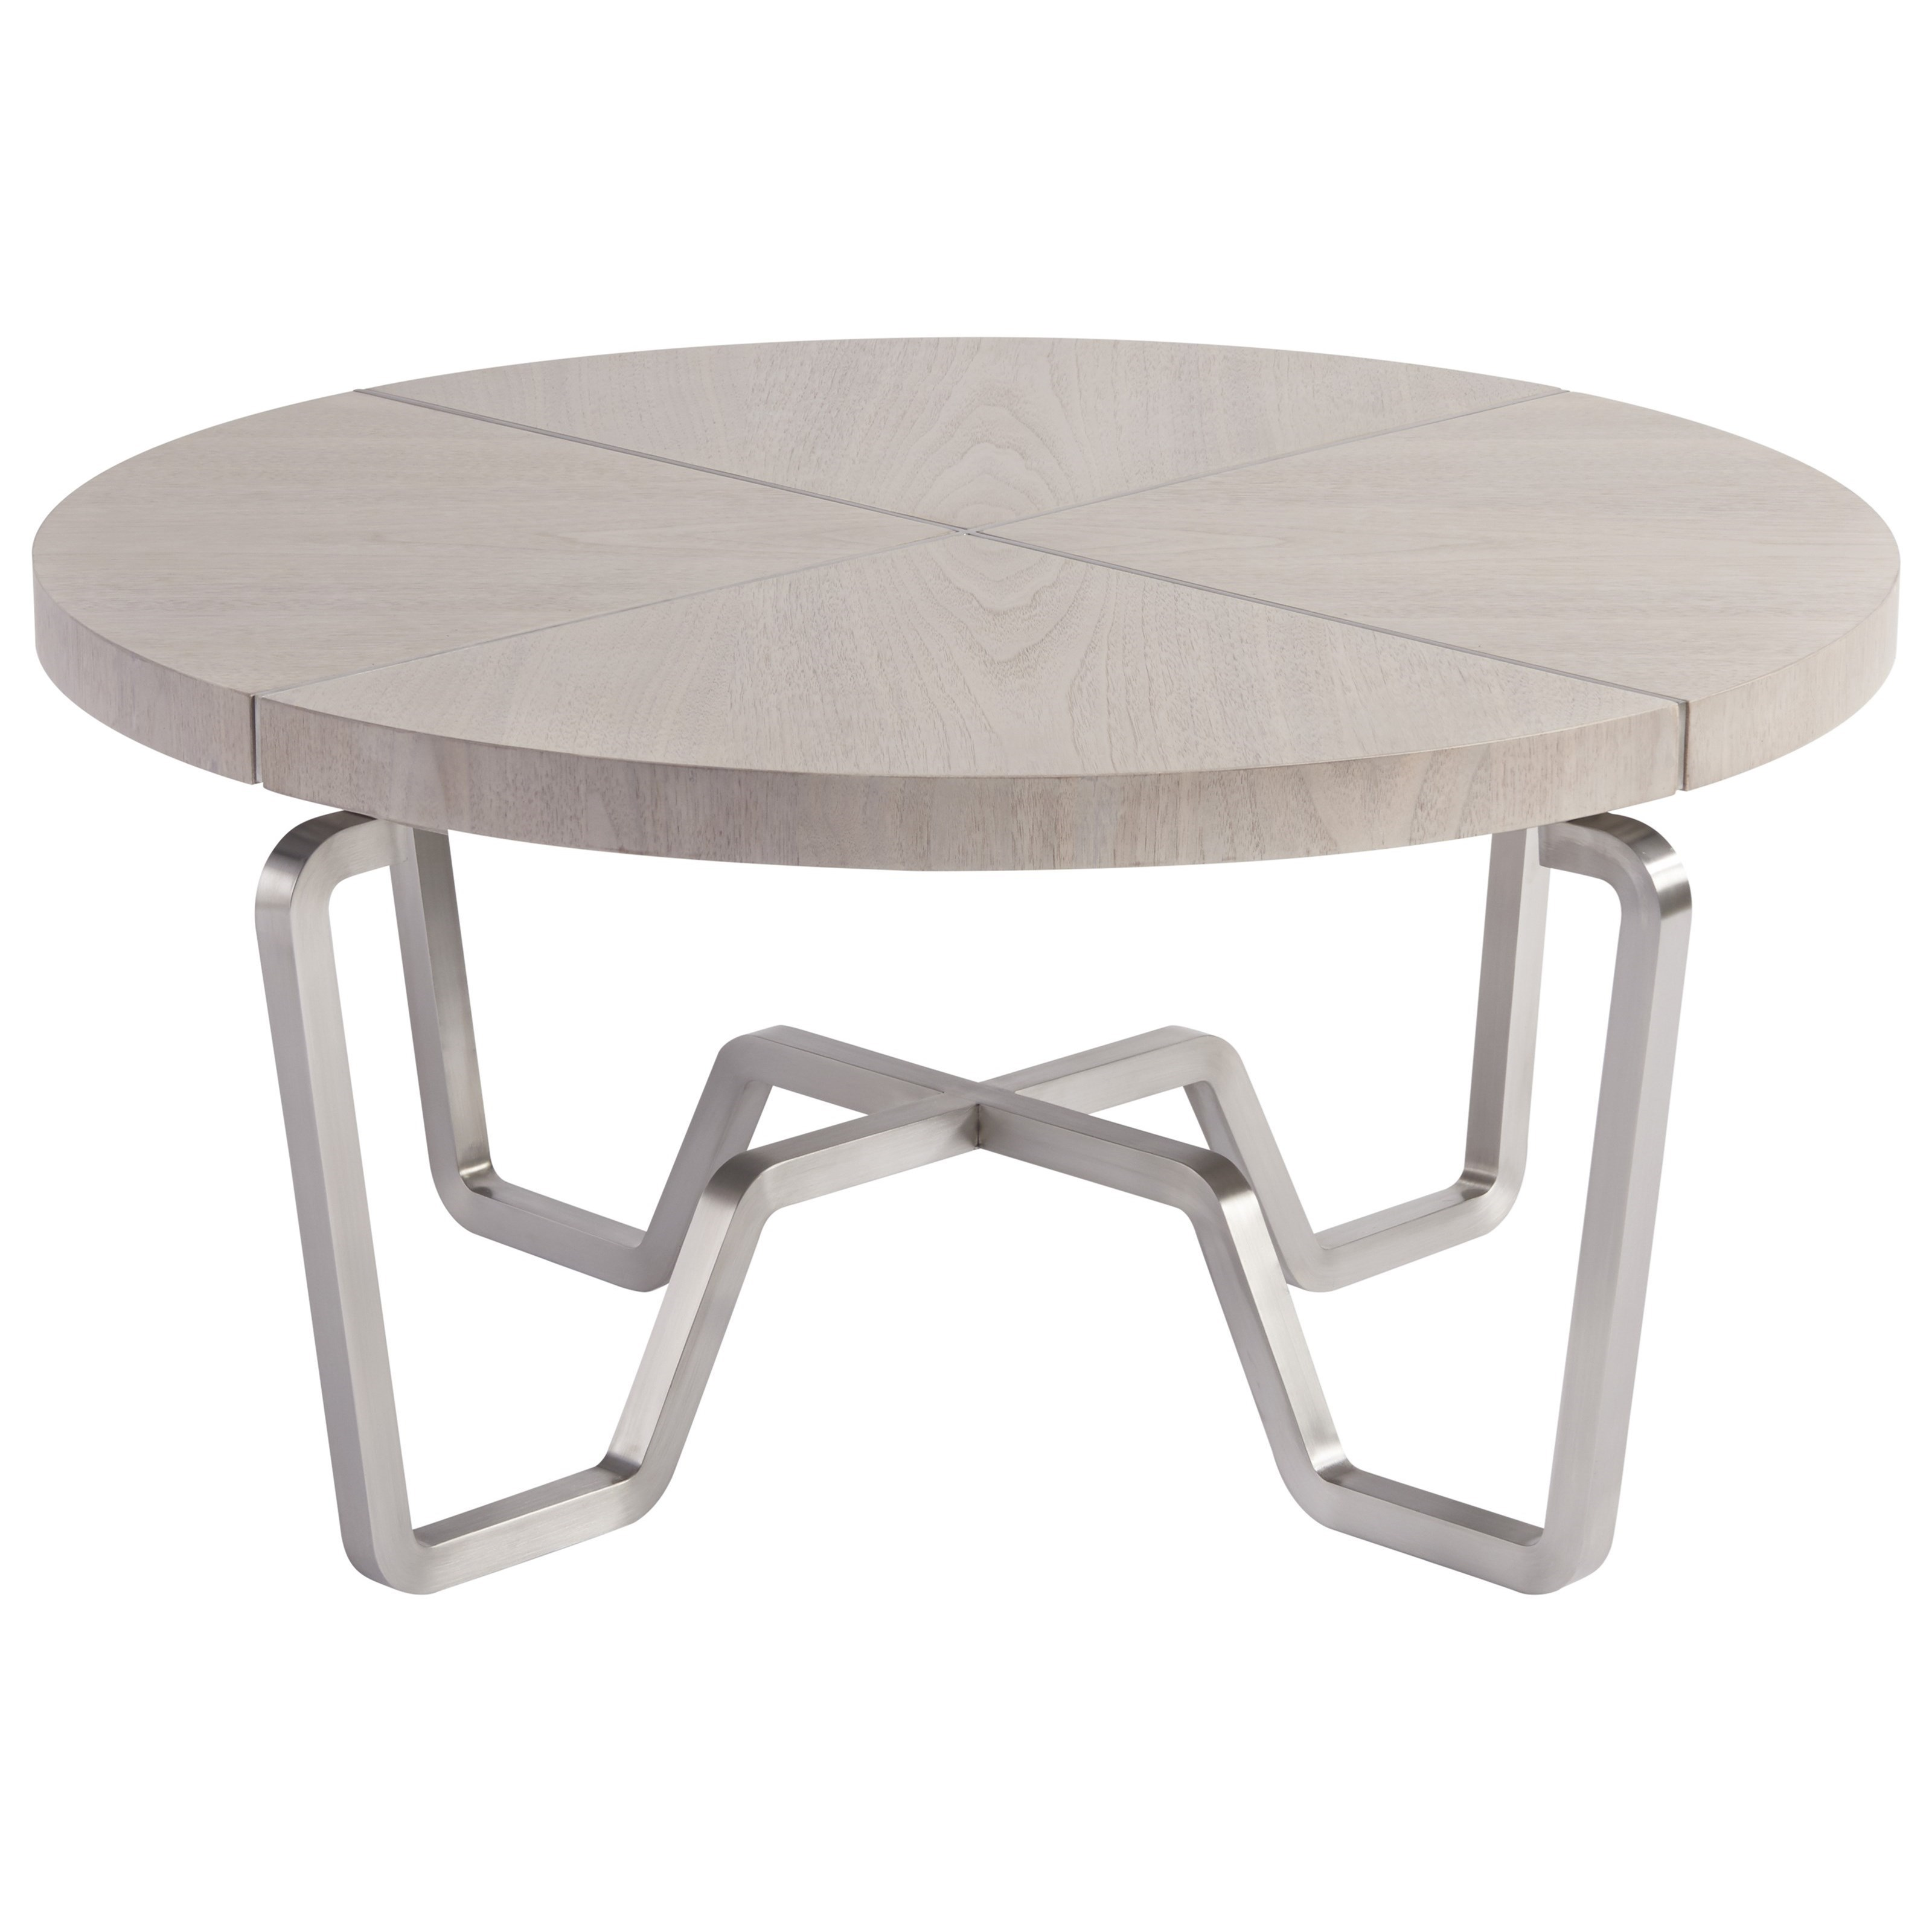 Spaces Mist Chatham Cocktail Table With Silver Base By Wittman U0026 Co.